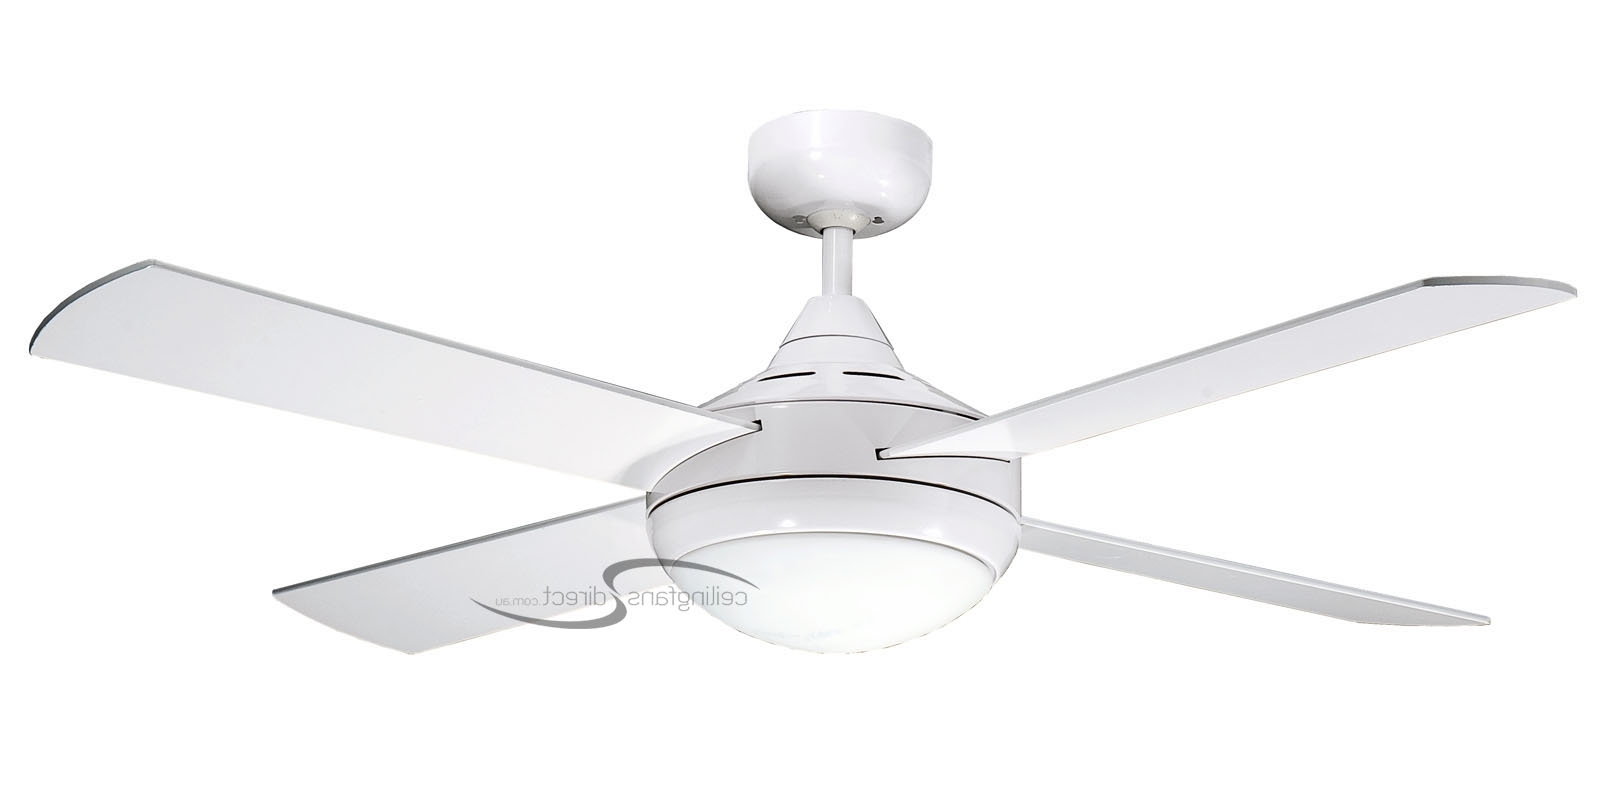 Voicesofimani Throughout 2018 Outdoor Ceiling Fans With Remote Control Lights (View 16 of 20)